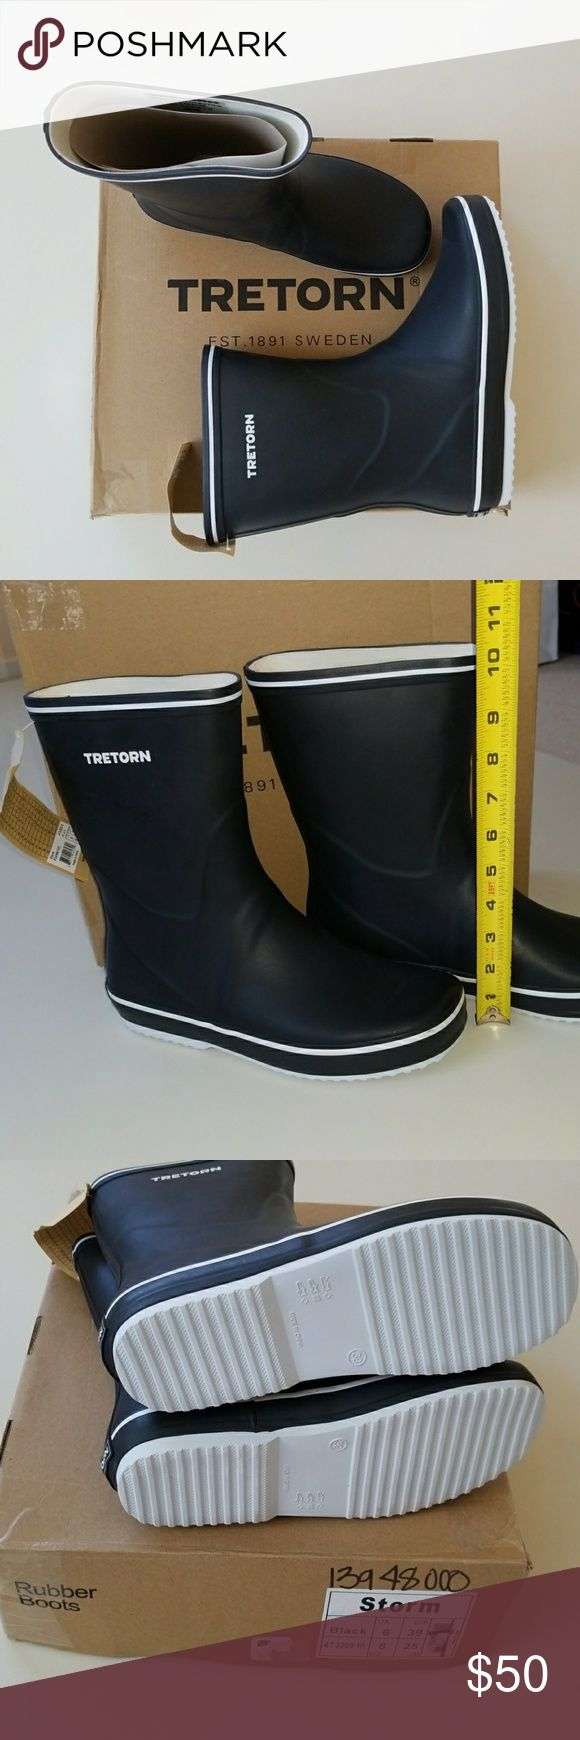 NWT Really Cute & Comfy Rubber Boots New rubber boots great for rain or snow. Soft rubber and  bendable so it's comfortable and won't crease. Velvety lining inside and cushy footbed for added comfort. Tretorn Shoes Winter & Rain Boots